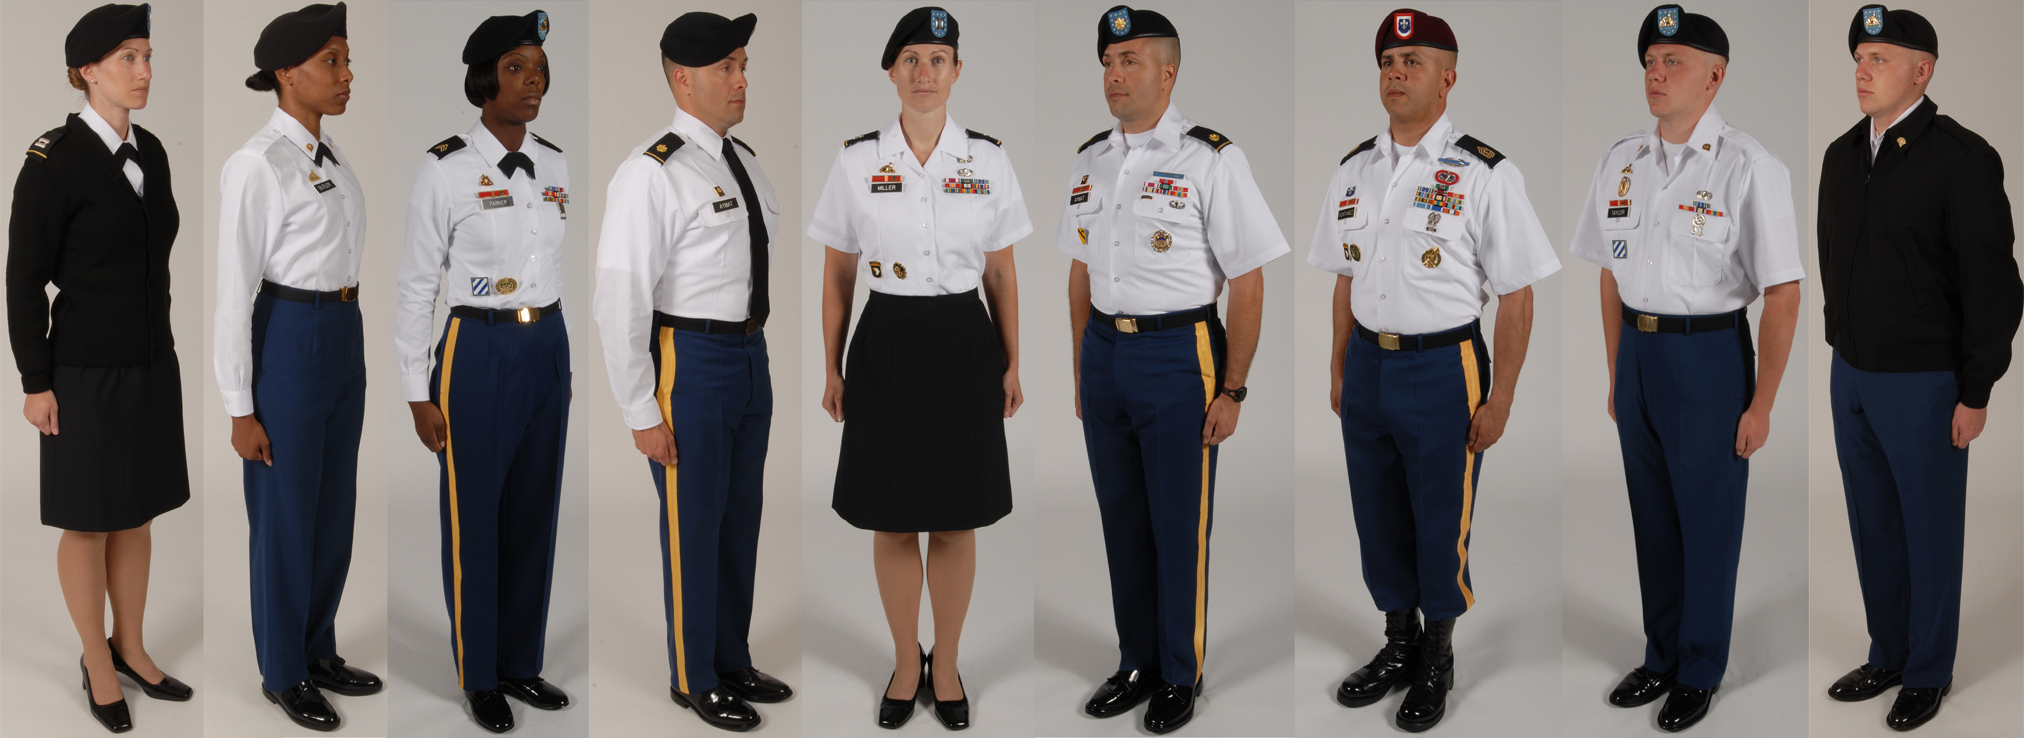 What is the difference between class A, Class B and class C military